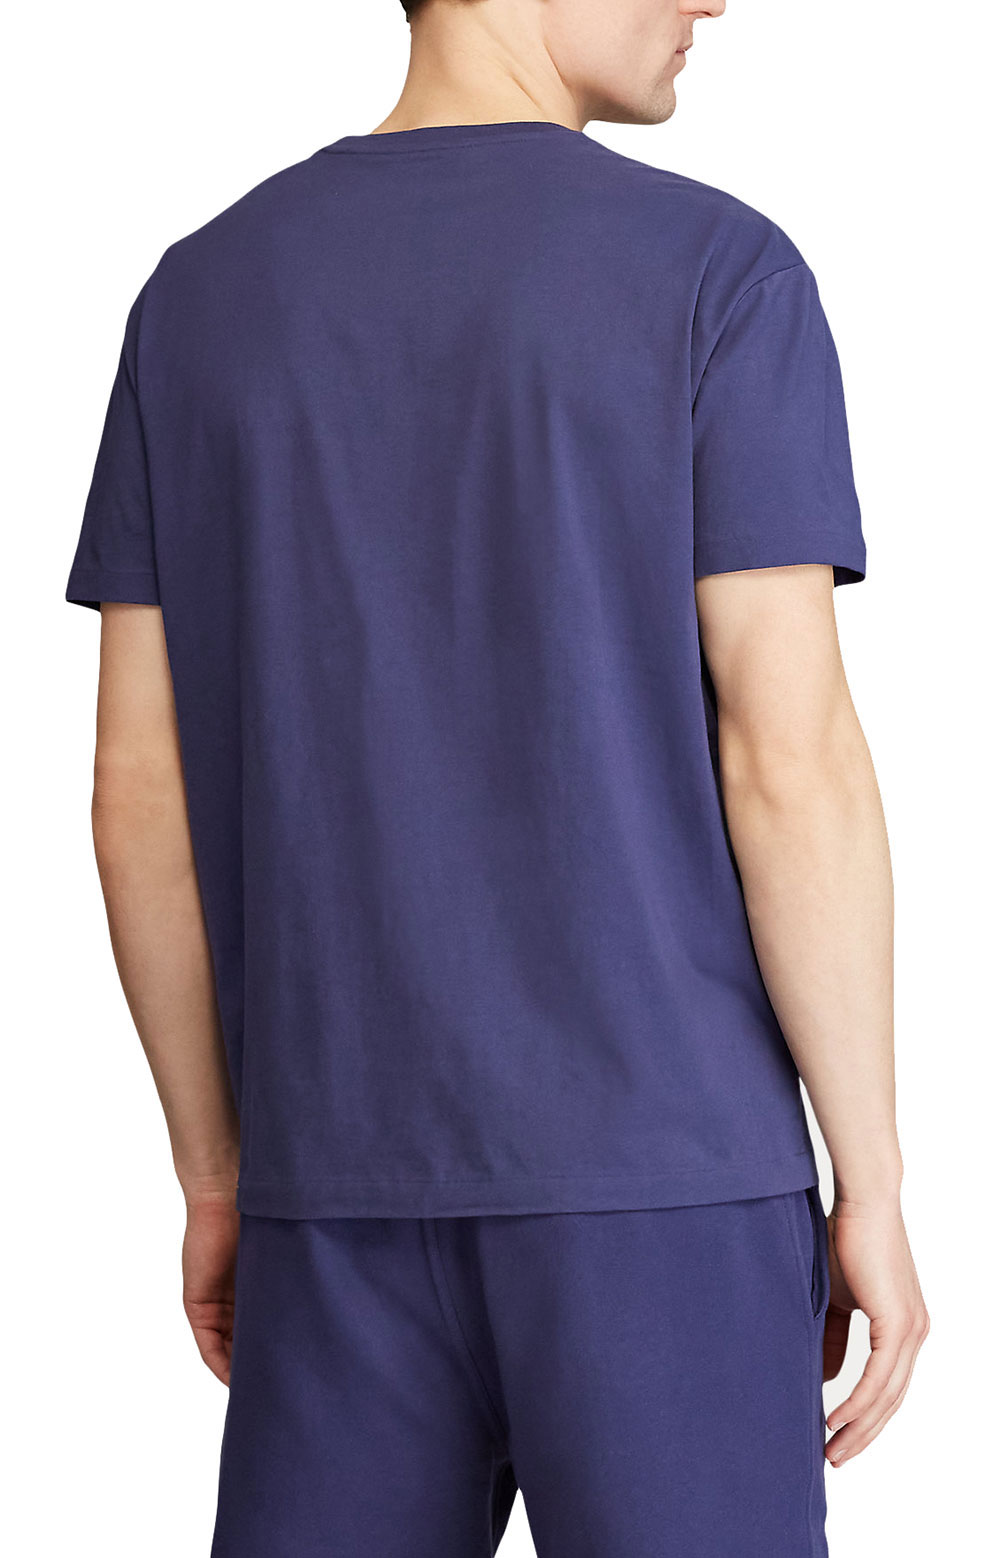 Classic Fit Logo T-Shirt - Boathouse Navy  3